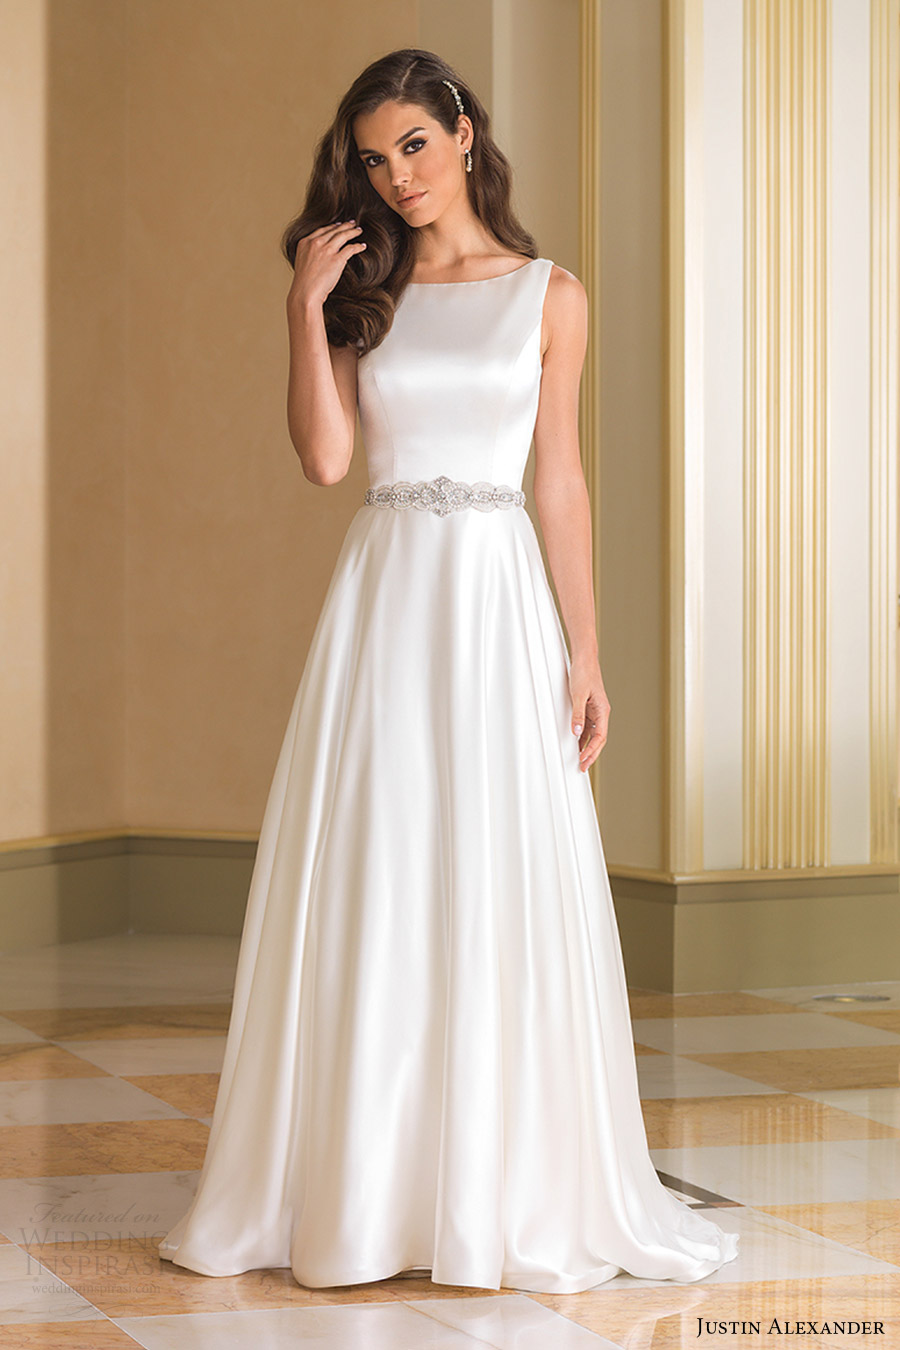 justin alexander bridal fall 2016 sleeveless bateau neck aline wedding dress (8866) mv